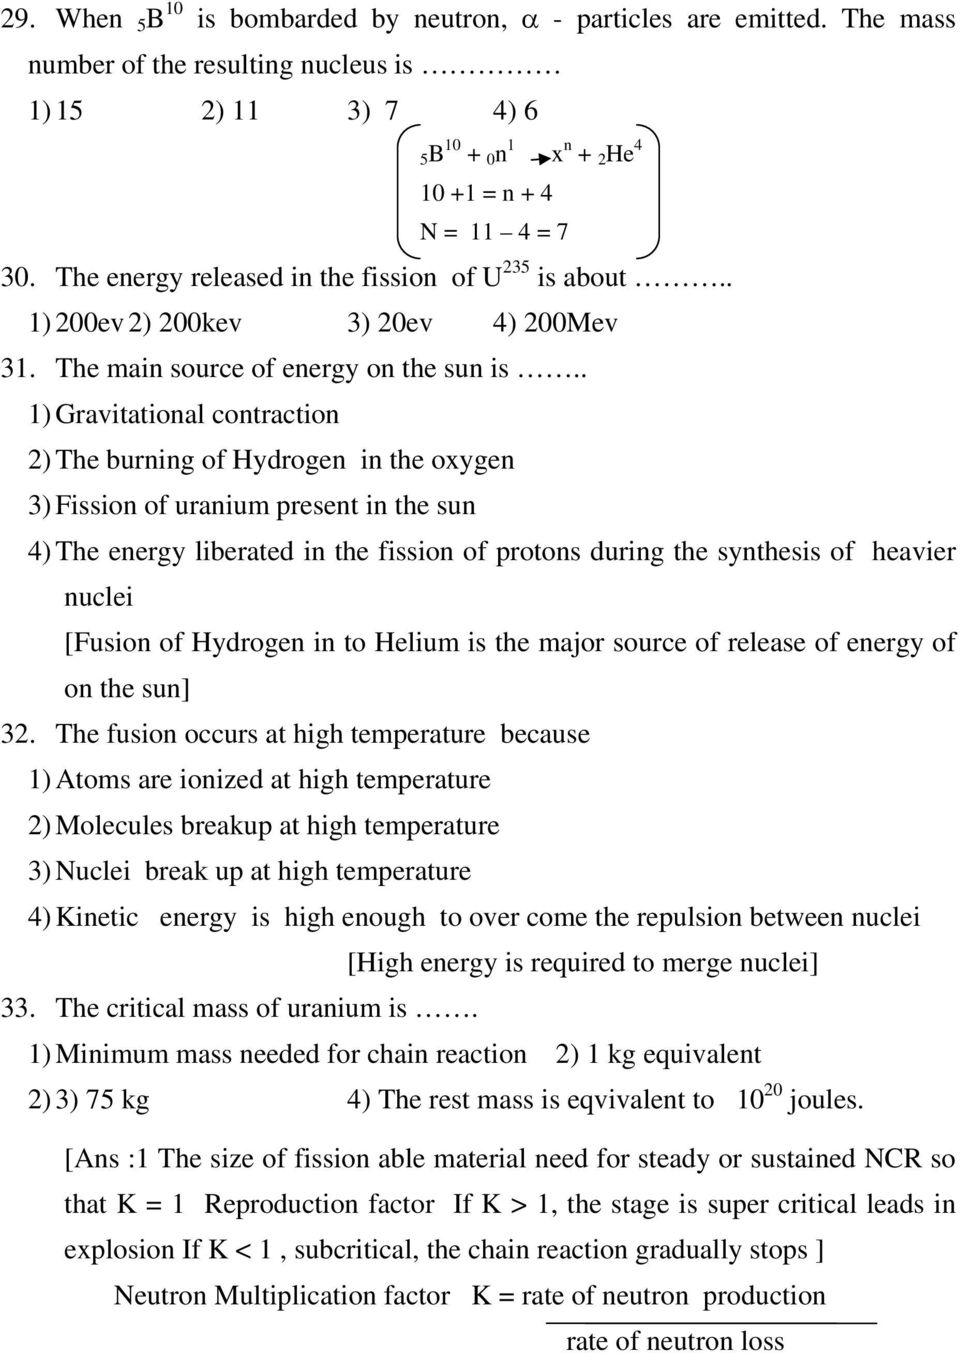 . 1) Gravitational contraction 2) The burning of Hydrogen in the oxygen 3) Fission of uranium present in the sun 4) The energy liberated in the fission of protons during the synthesis of heavier